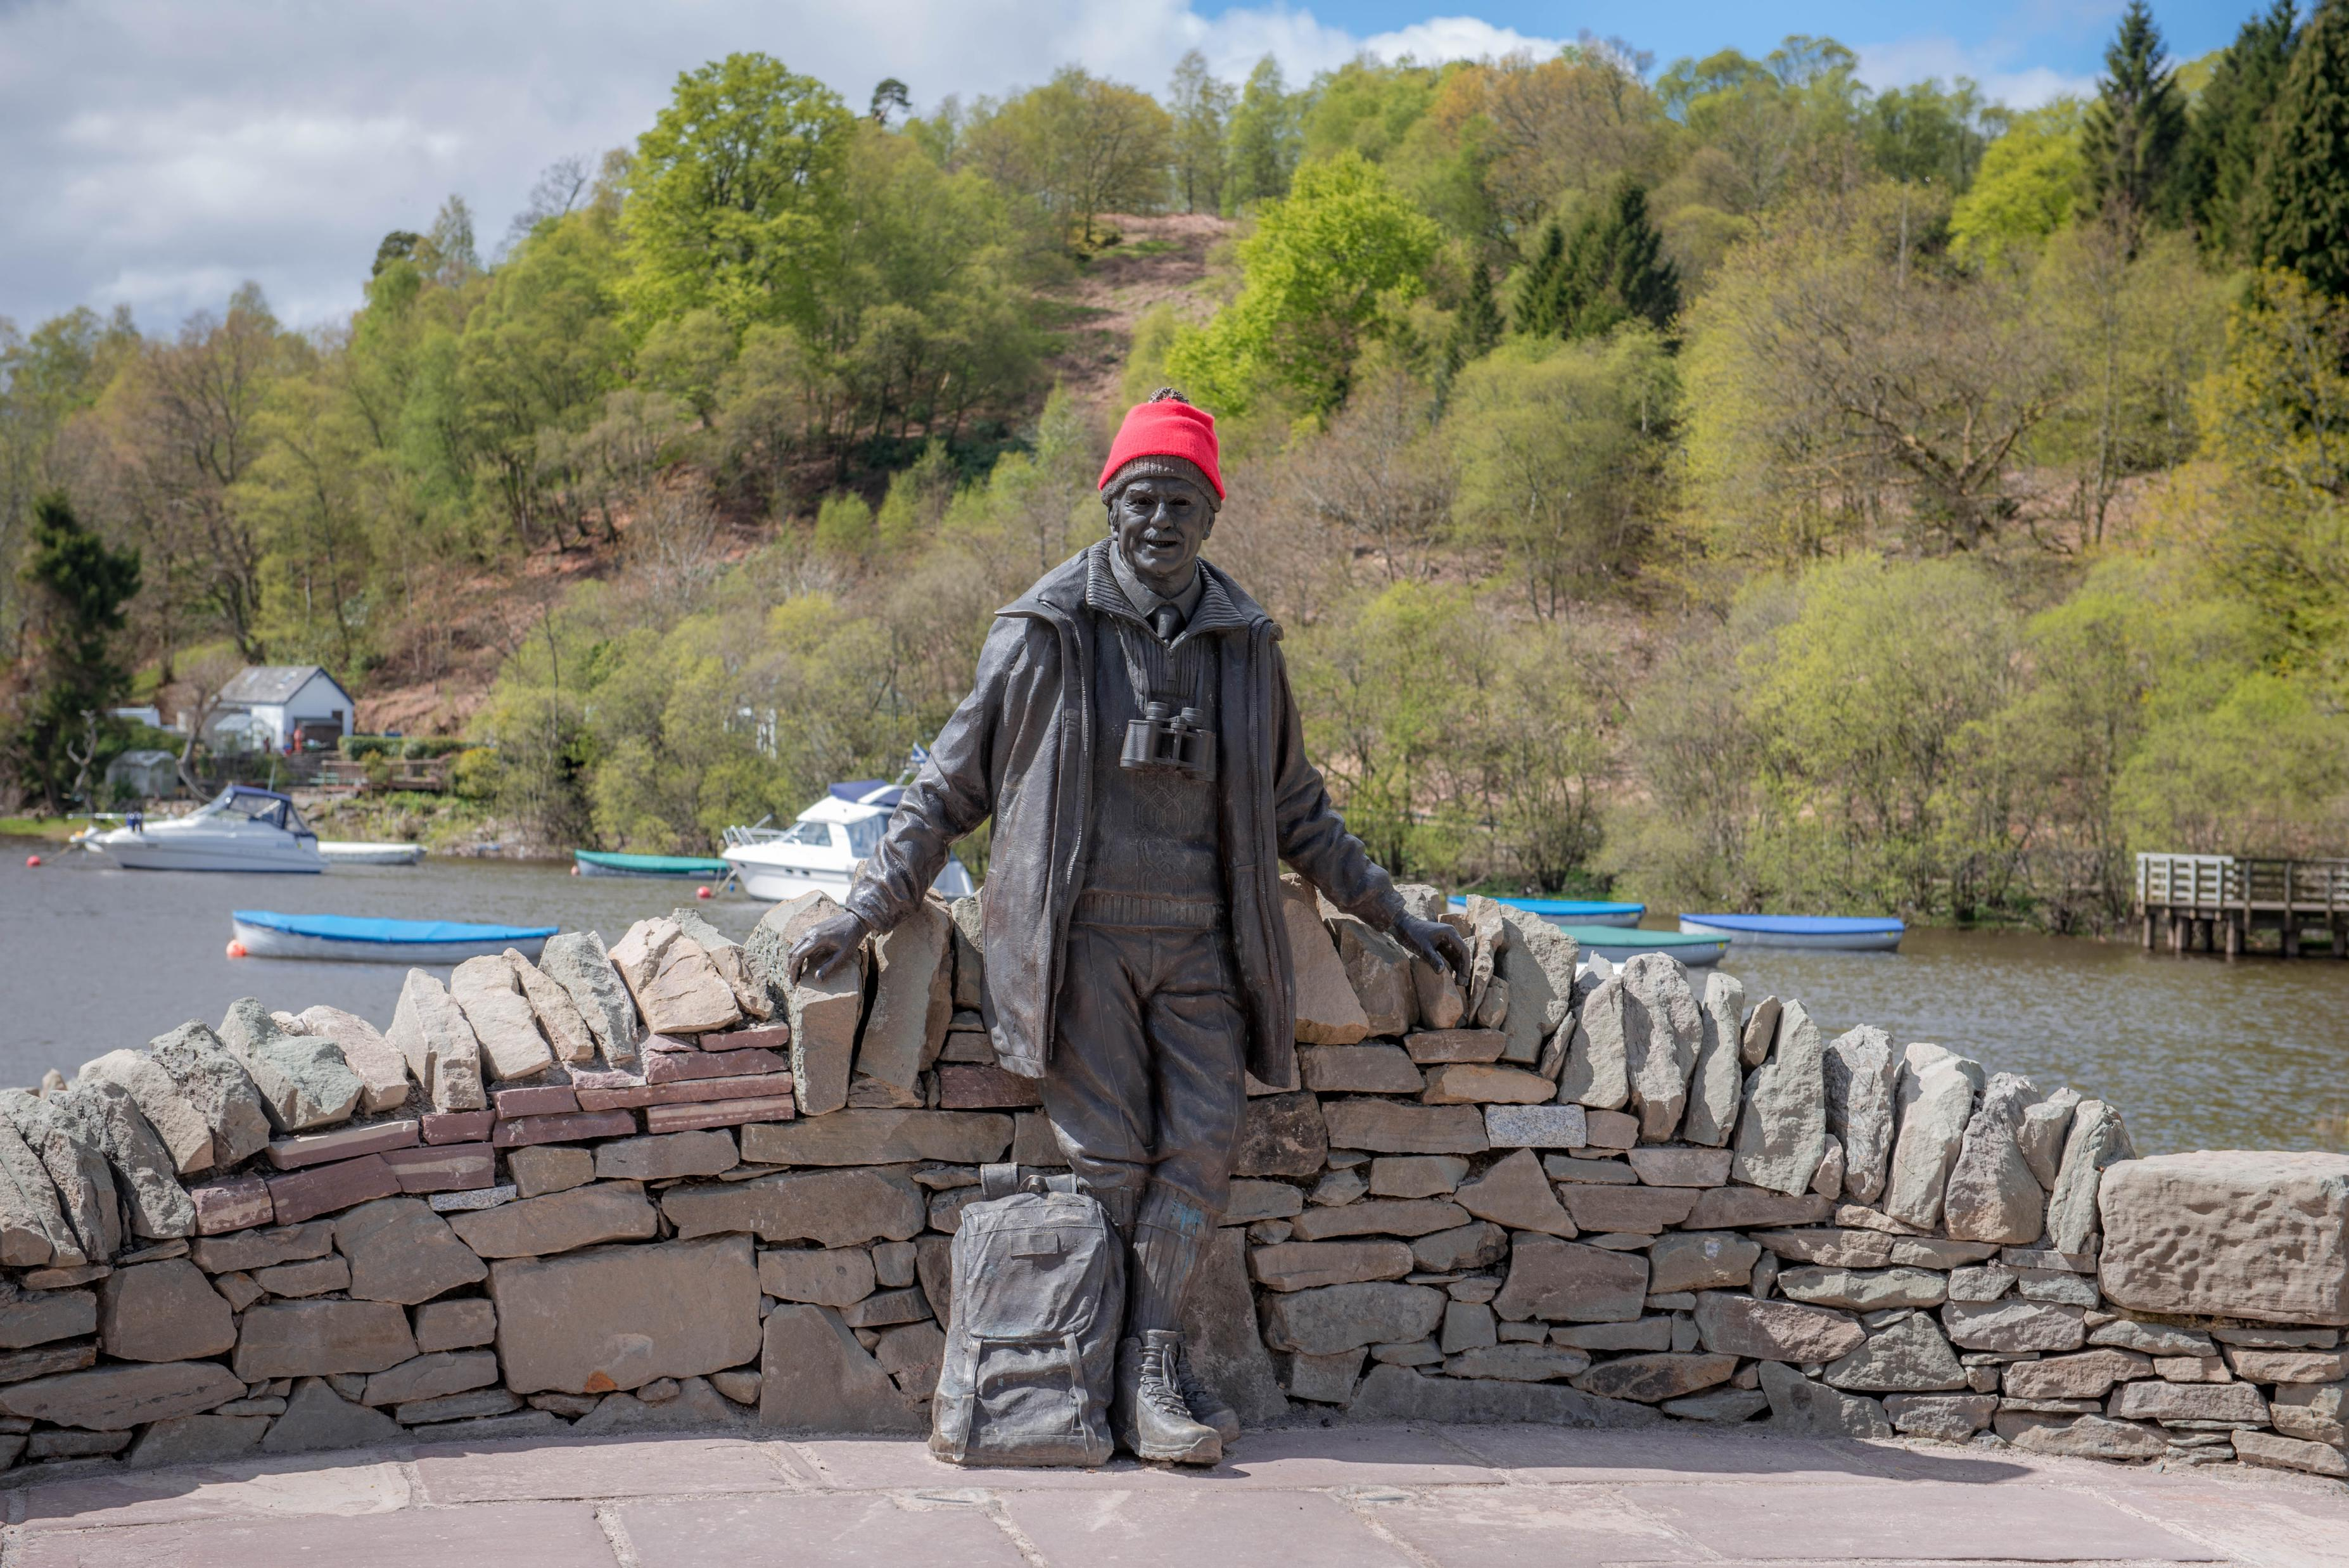 The Tom Weir Statue at Balmaha